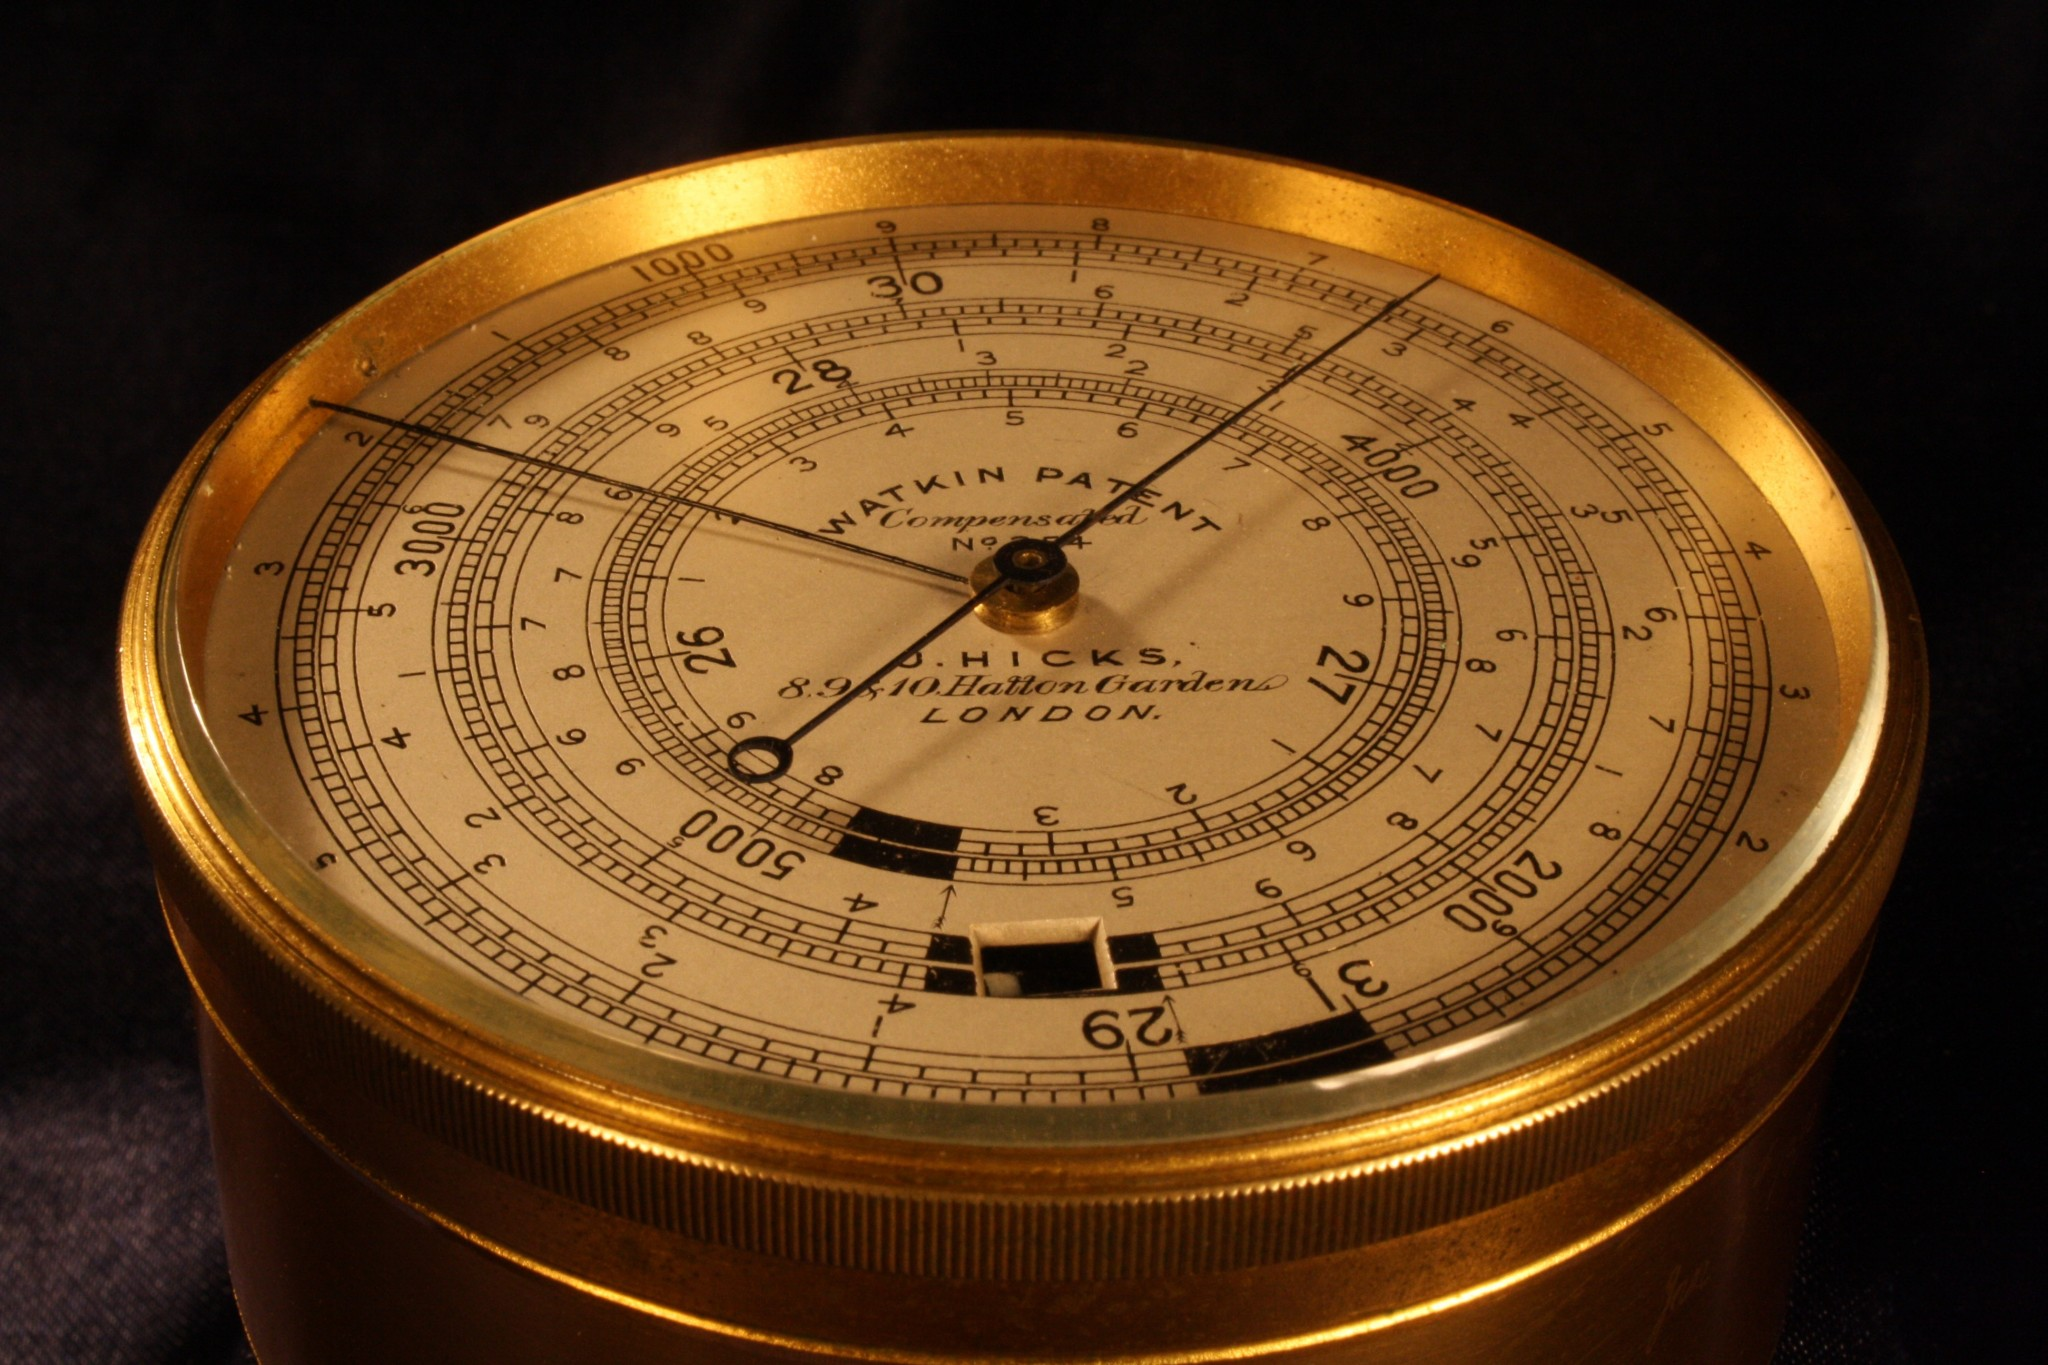 Image of Watkin Patent Altimeter by Hicks No 354